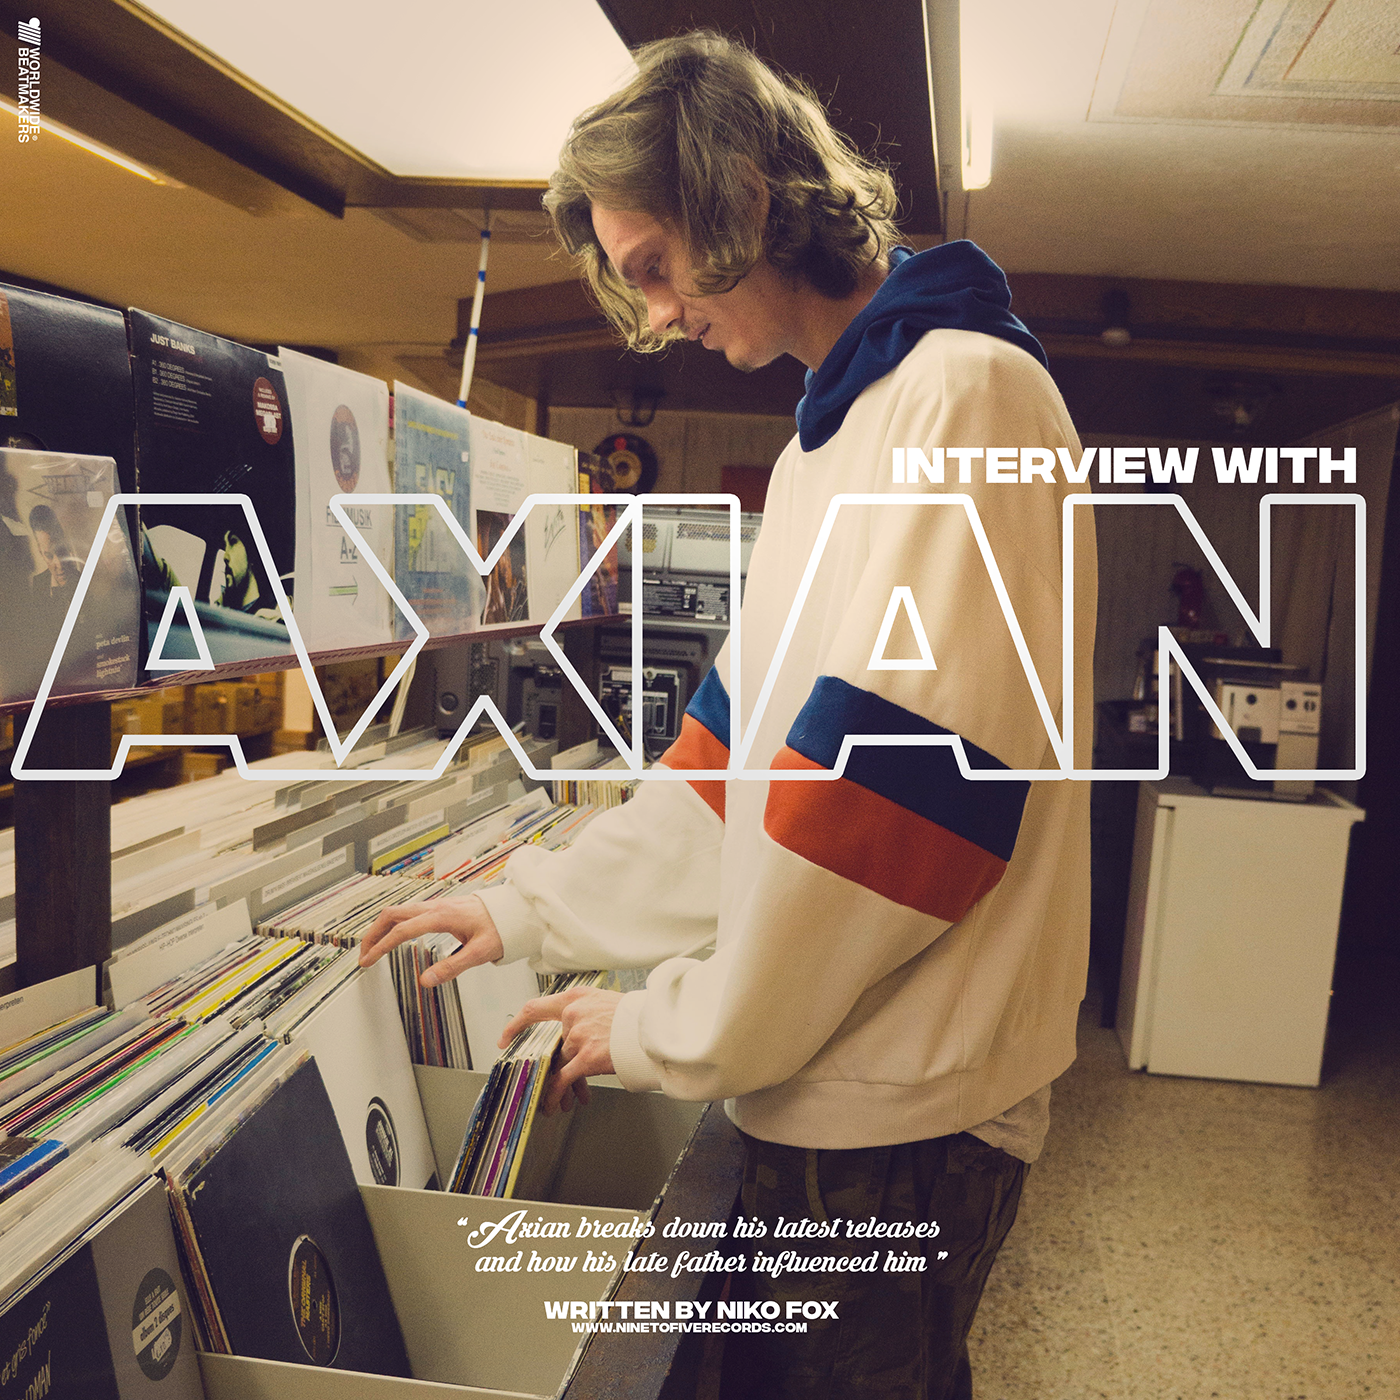 Axian breaks down his latest releases and how his late father influenced him